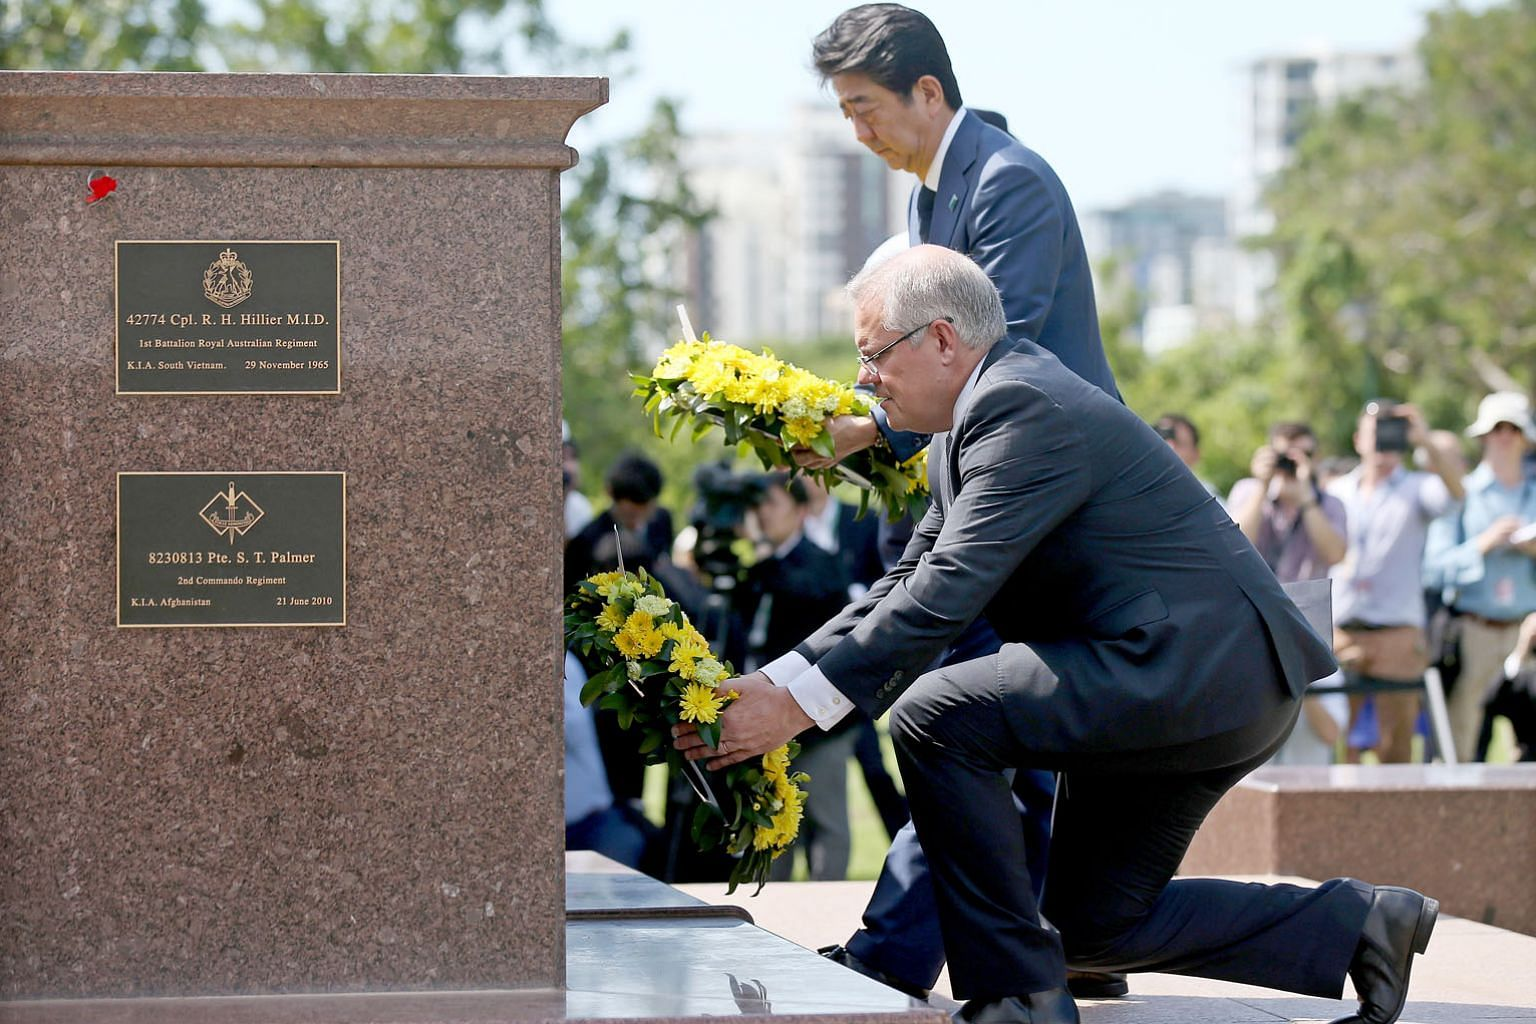 Australian Prime Minister Scott Morrison and visiting Japanese leader Shinzo Abe laying wreaths at the Cenotaph War Memorial in Darwin, Northern Territory, yesterday.